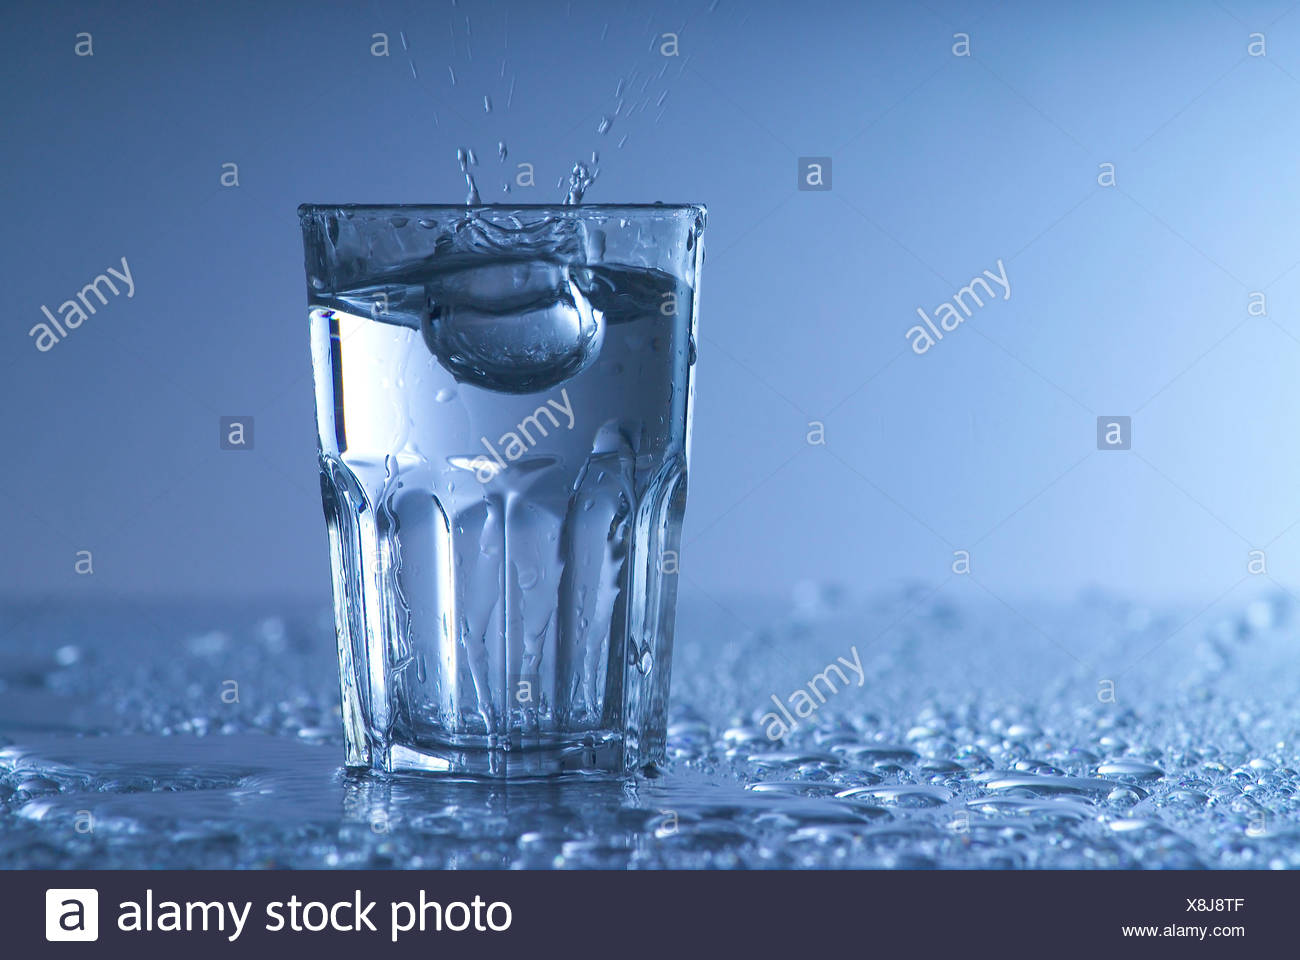 sauberes Wasser im Glas - Glass of clean Water - Stock Image